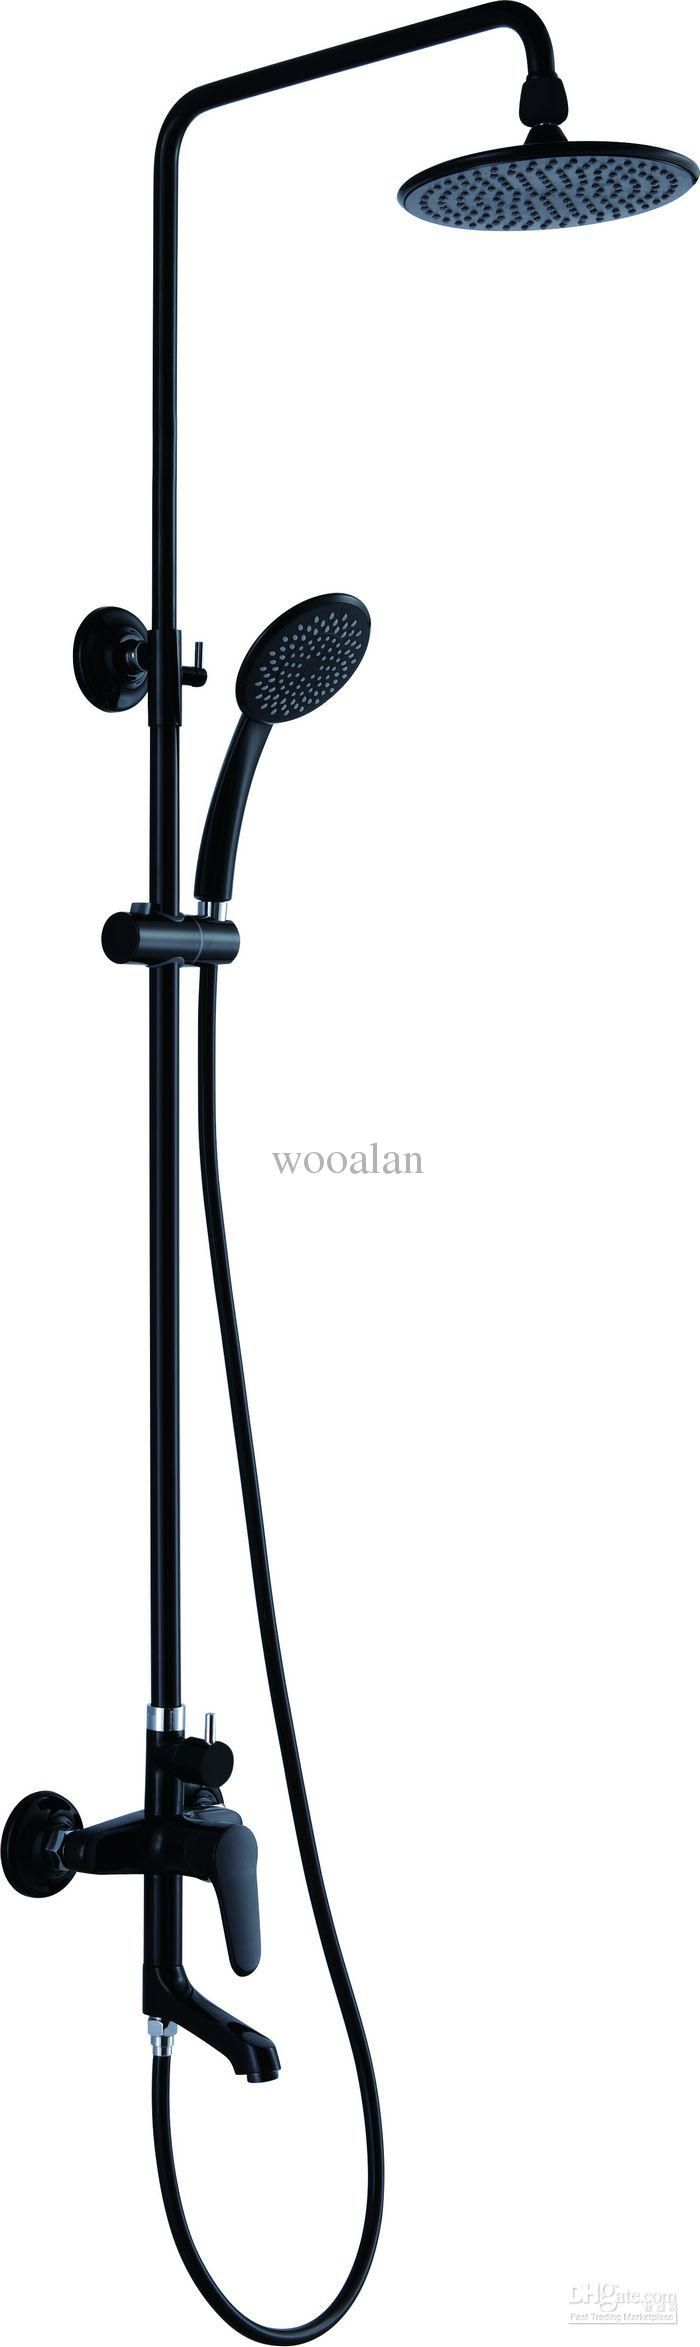 2021 2013 New Luxury Black Color Exposed Bath And Shower Solid Brass Shower Mixer Faucets 80658 From Wooalan 228 15 Dhgate Com Bathroom Shower Faucets Bathroom Shower Trendy Bathroom [ jpg ]